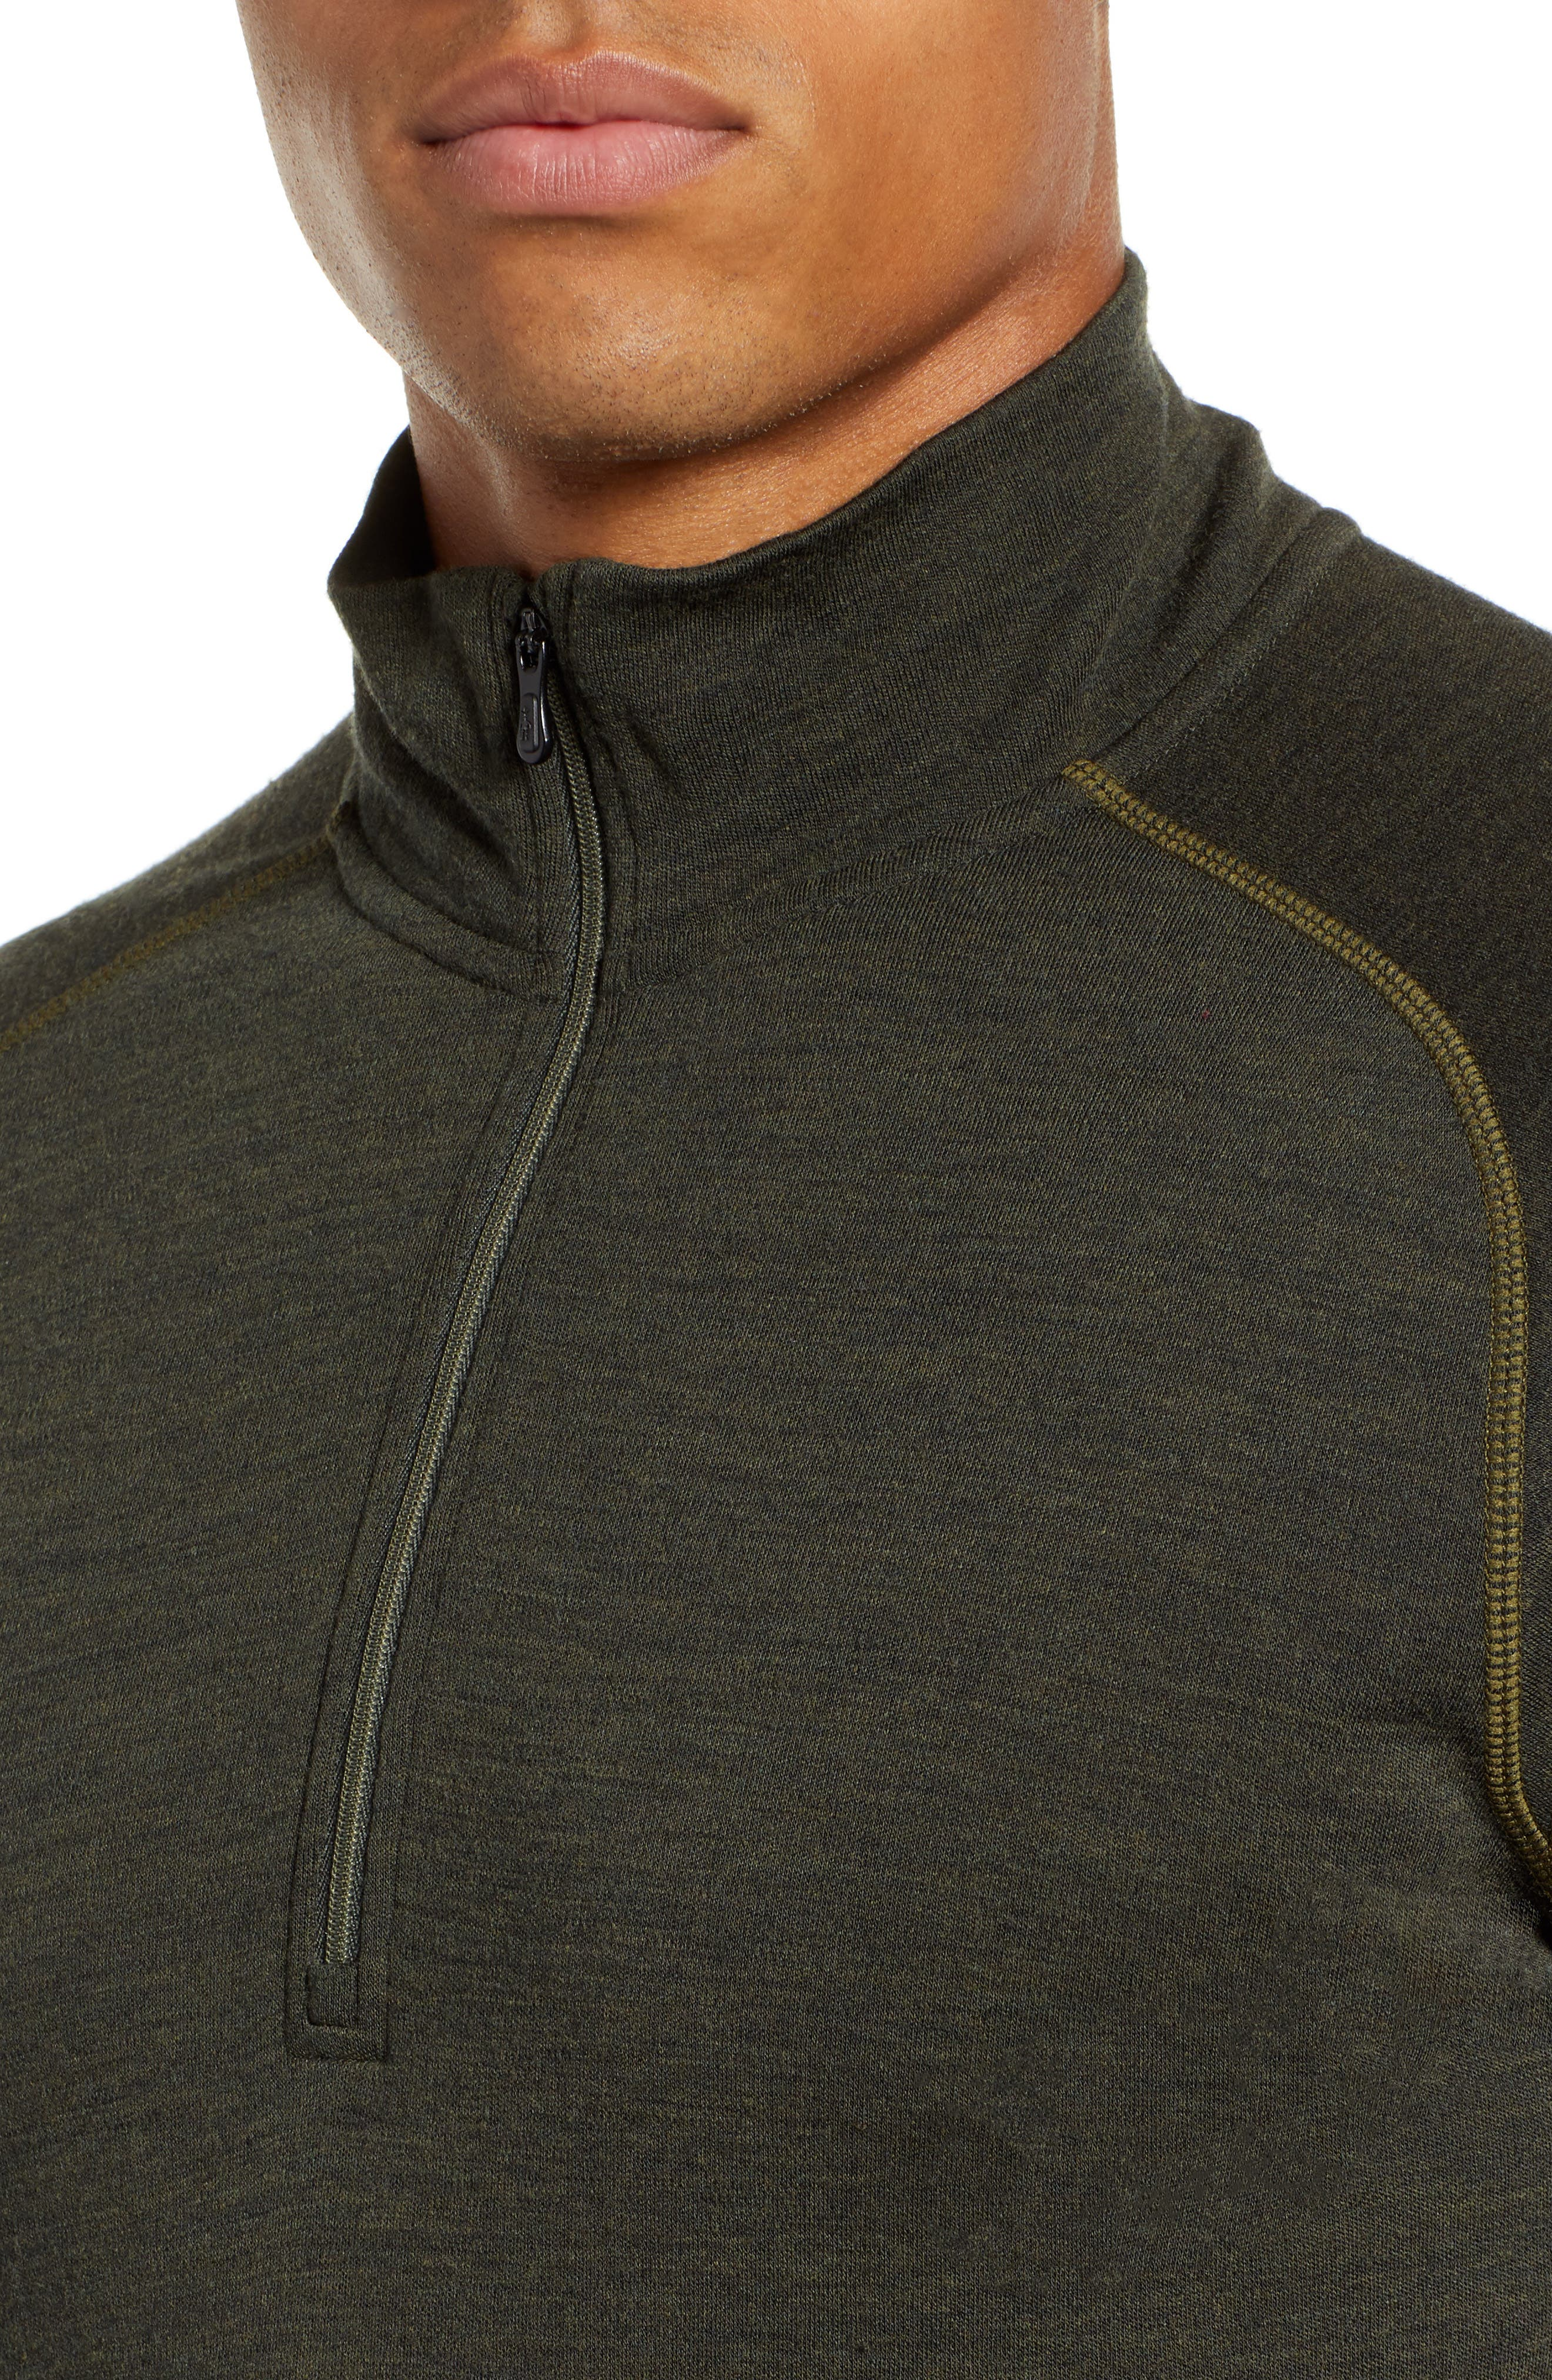 Merino 250 Base Layer Quarter Zip Pullover,                             Alternate thumbnail 4, color,                             OLIVE HEATHER